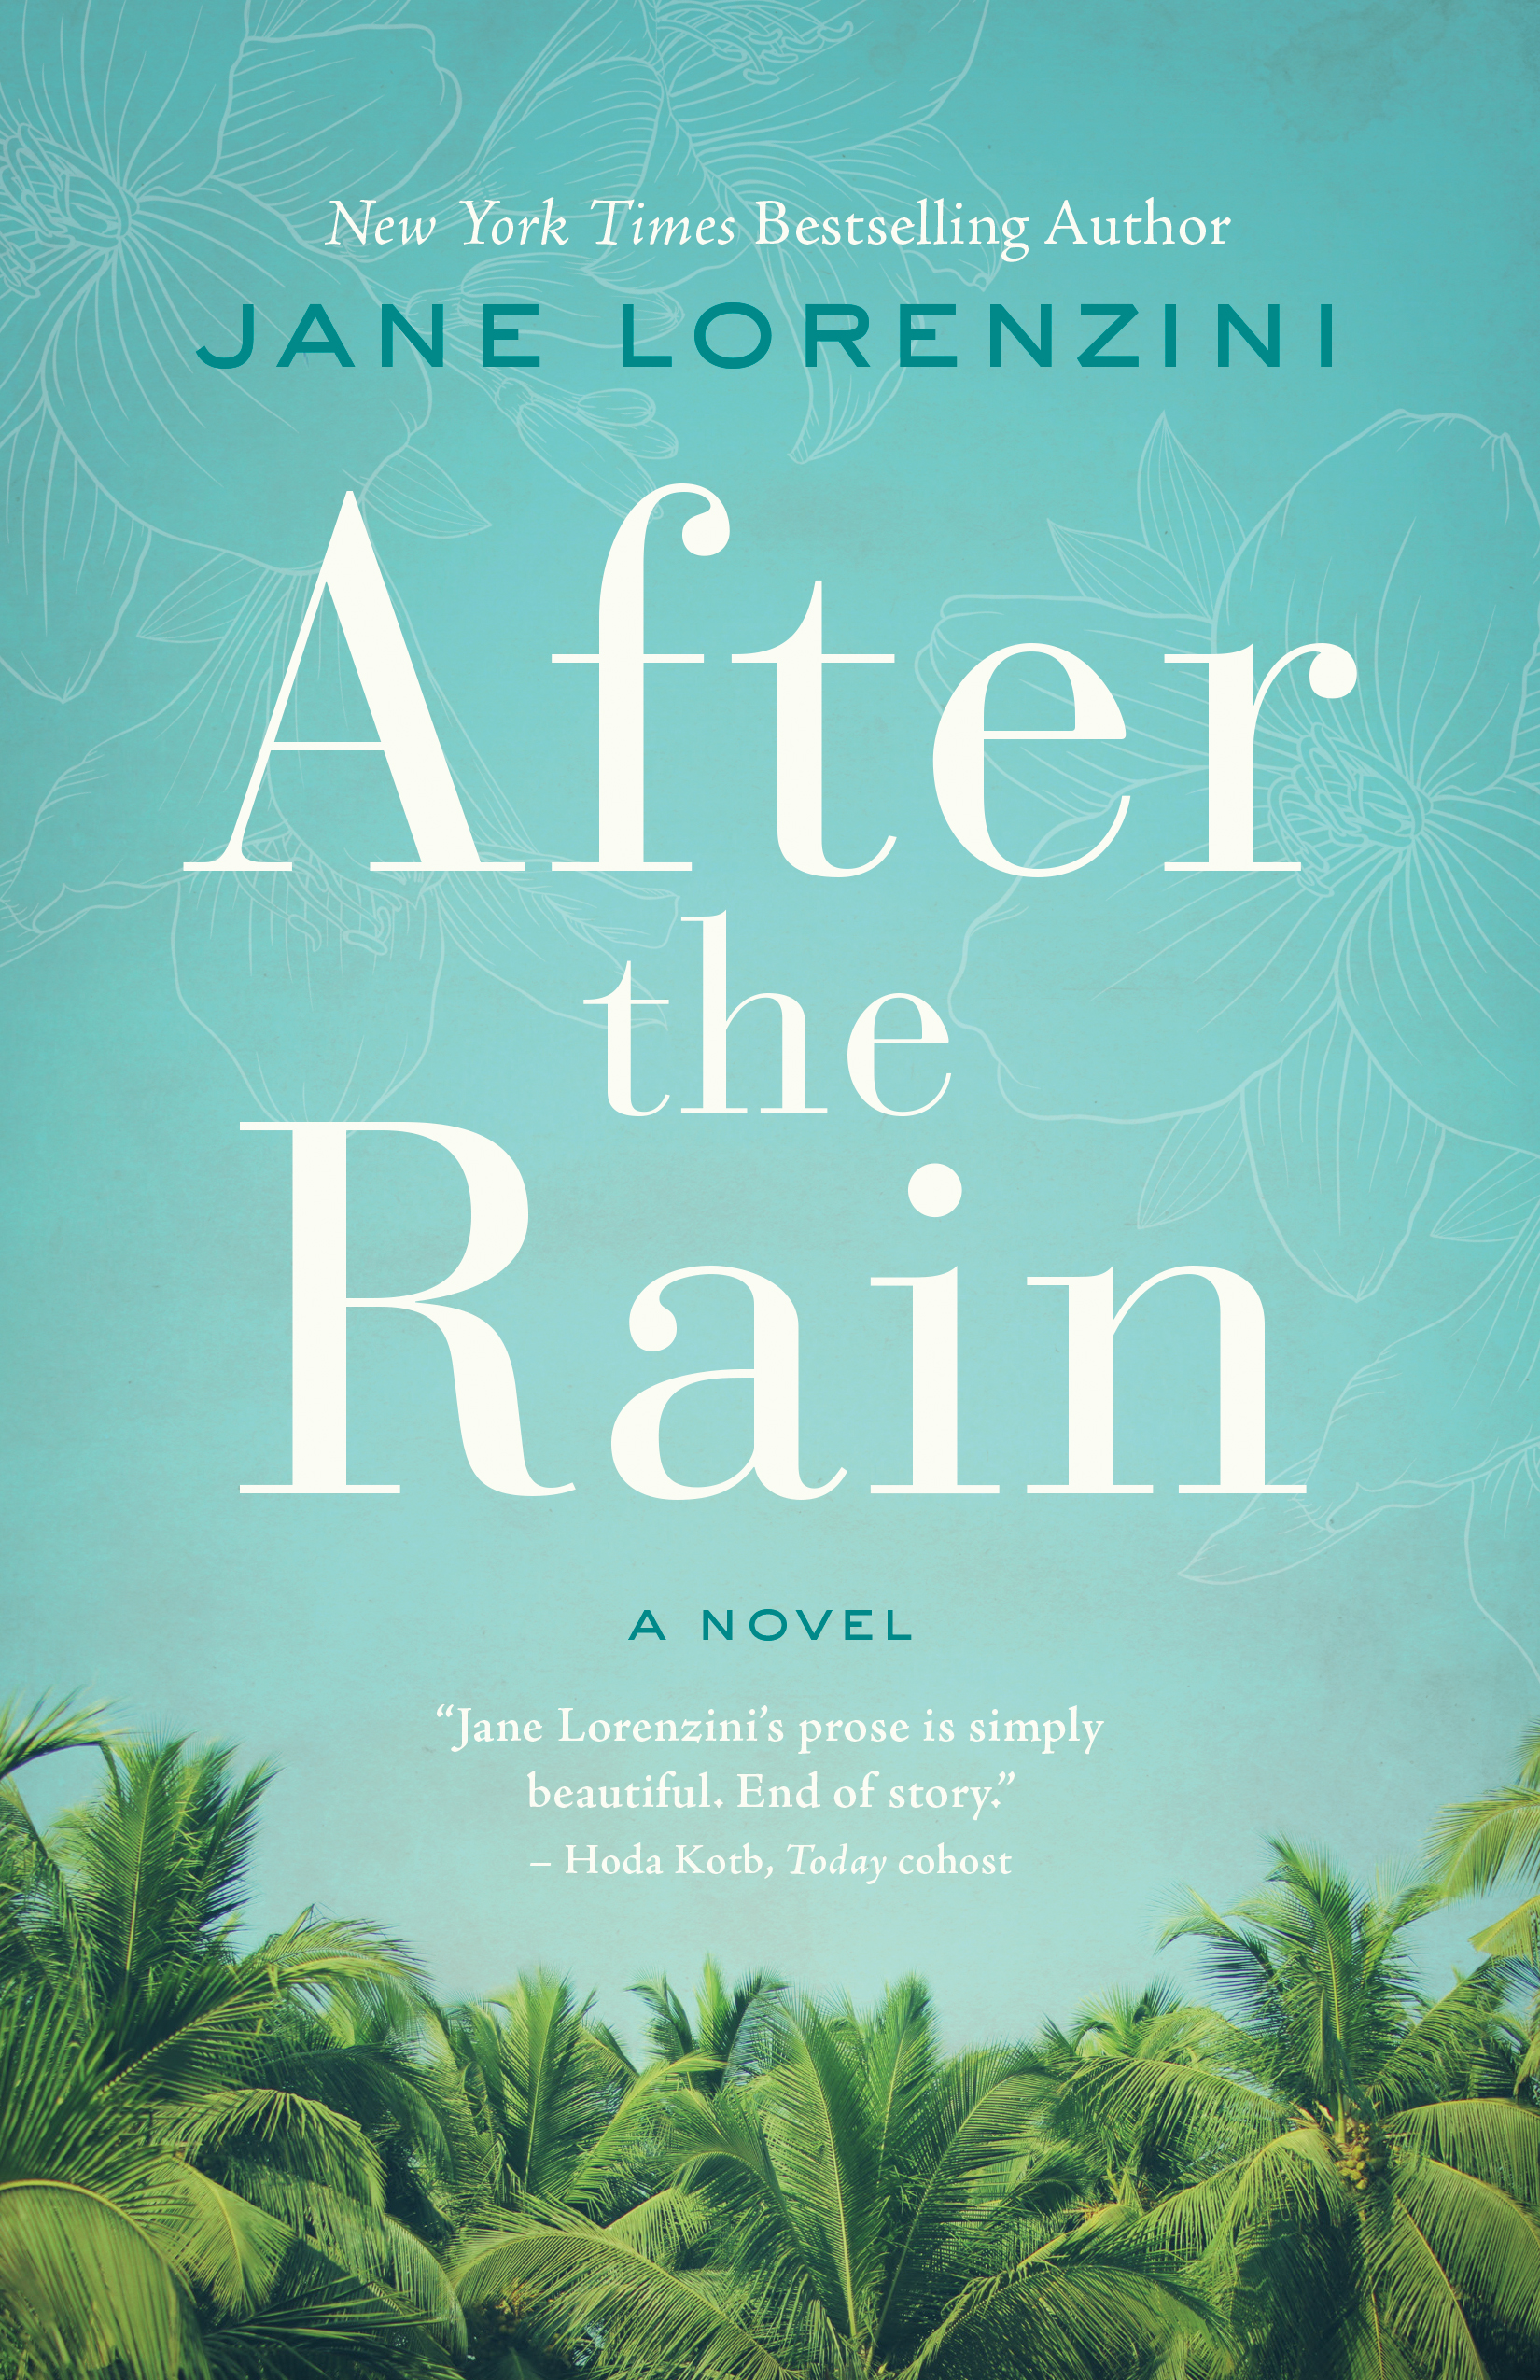 After the Rain - Front Cover - High Res.jpg